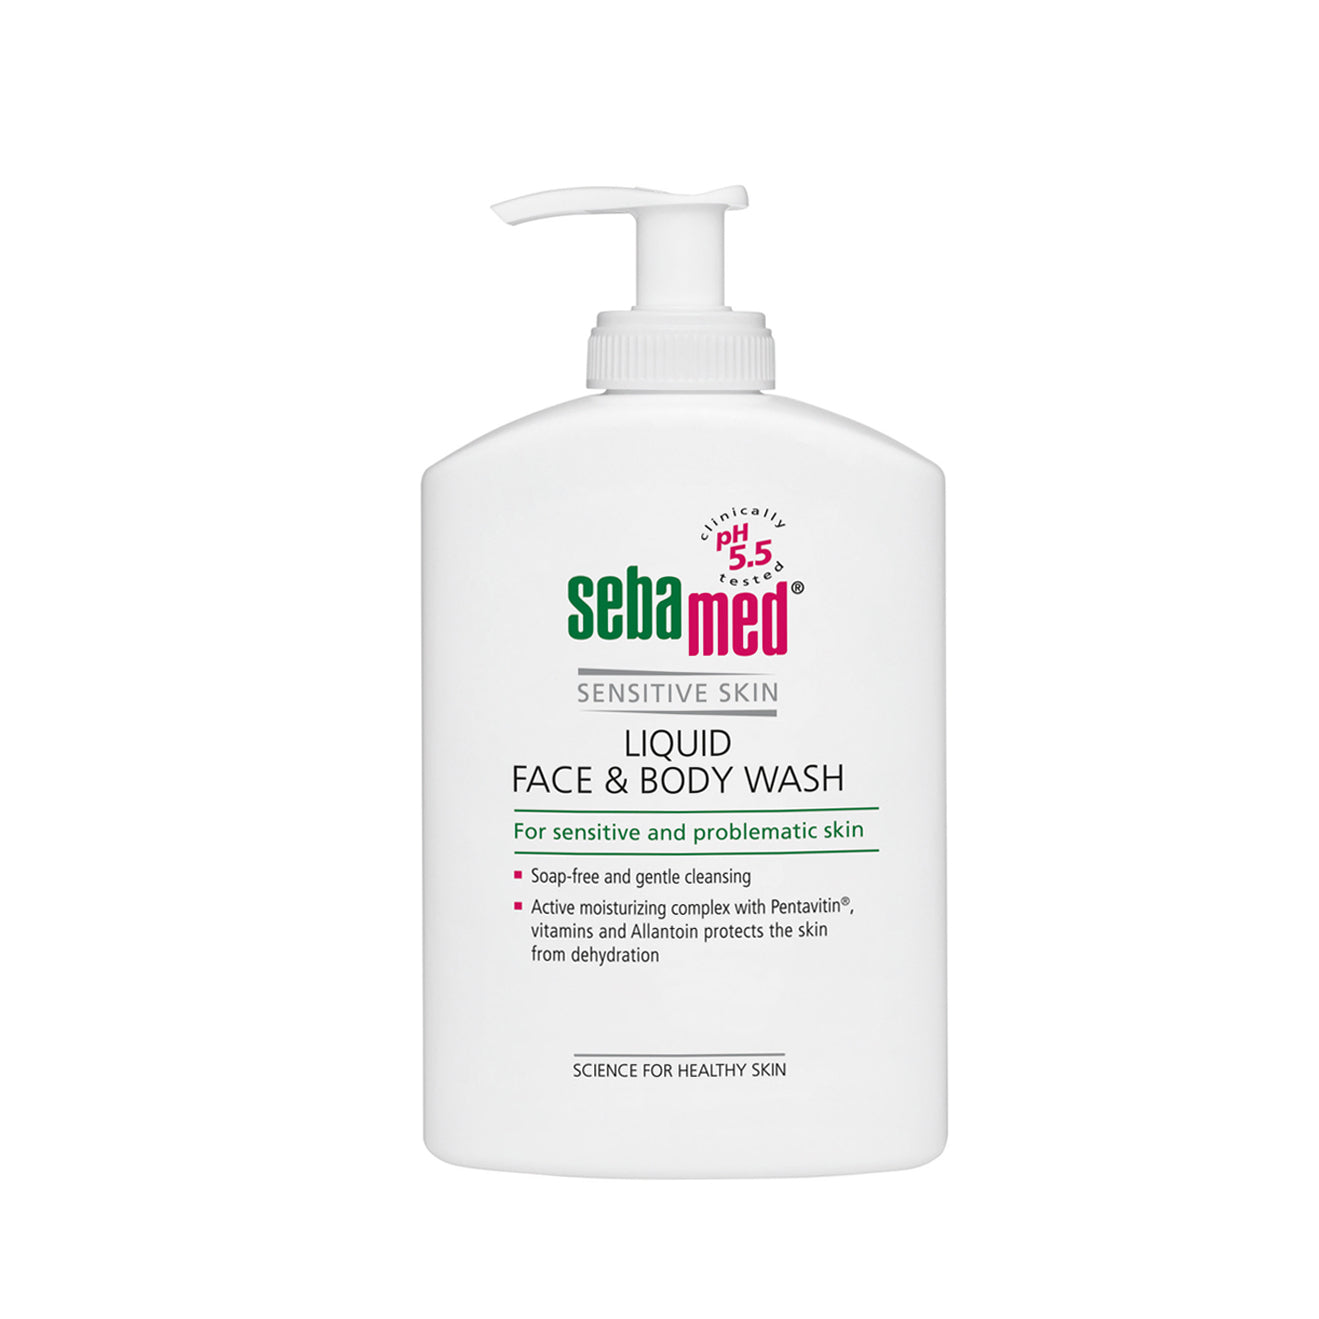 sebamed Liquid Face and Body Wash 1L Pump